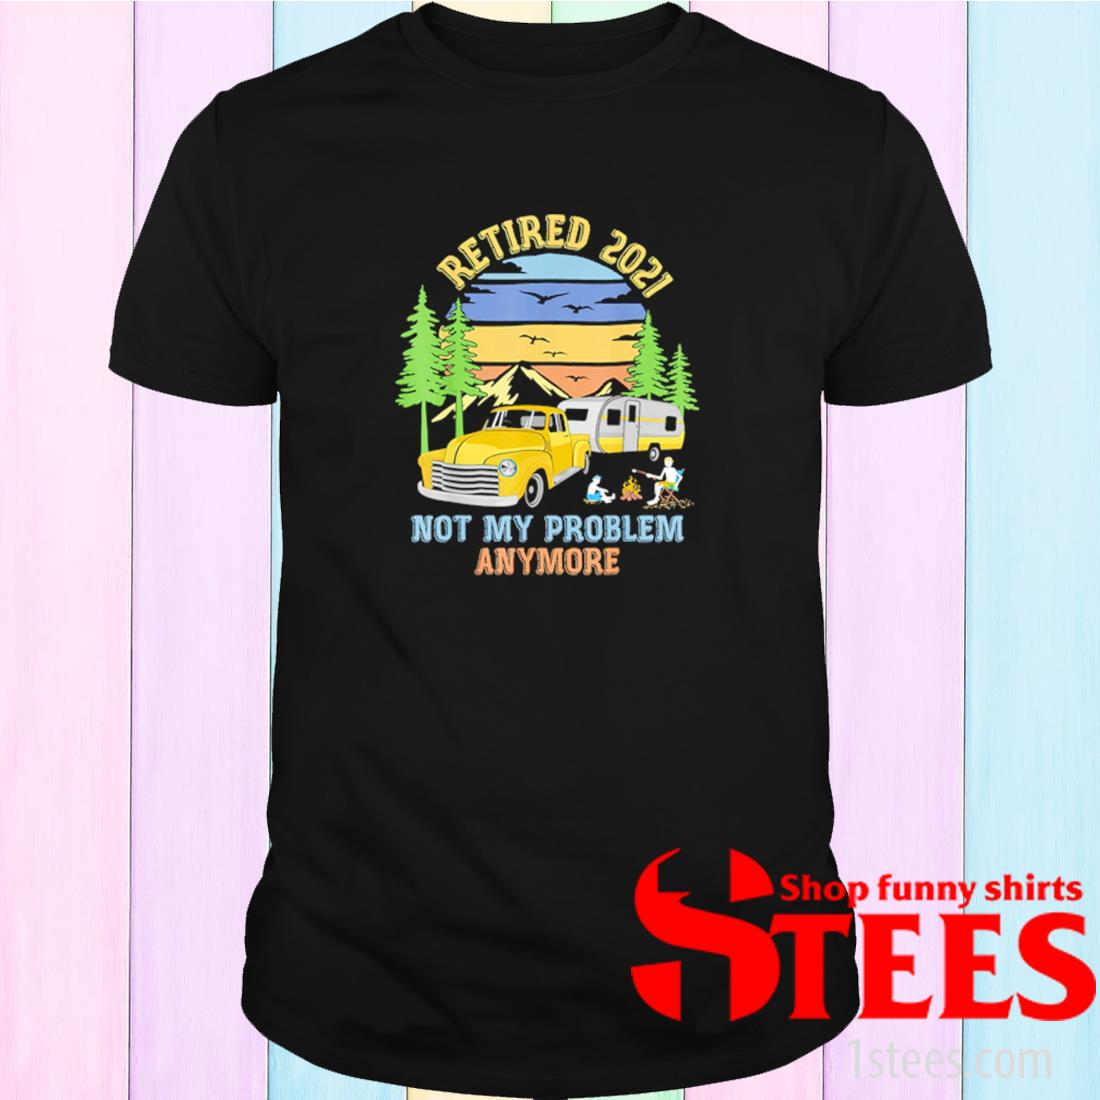 Retired 2021 Not My Problem Anymore Sunset Shirt